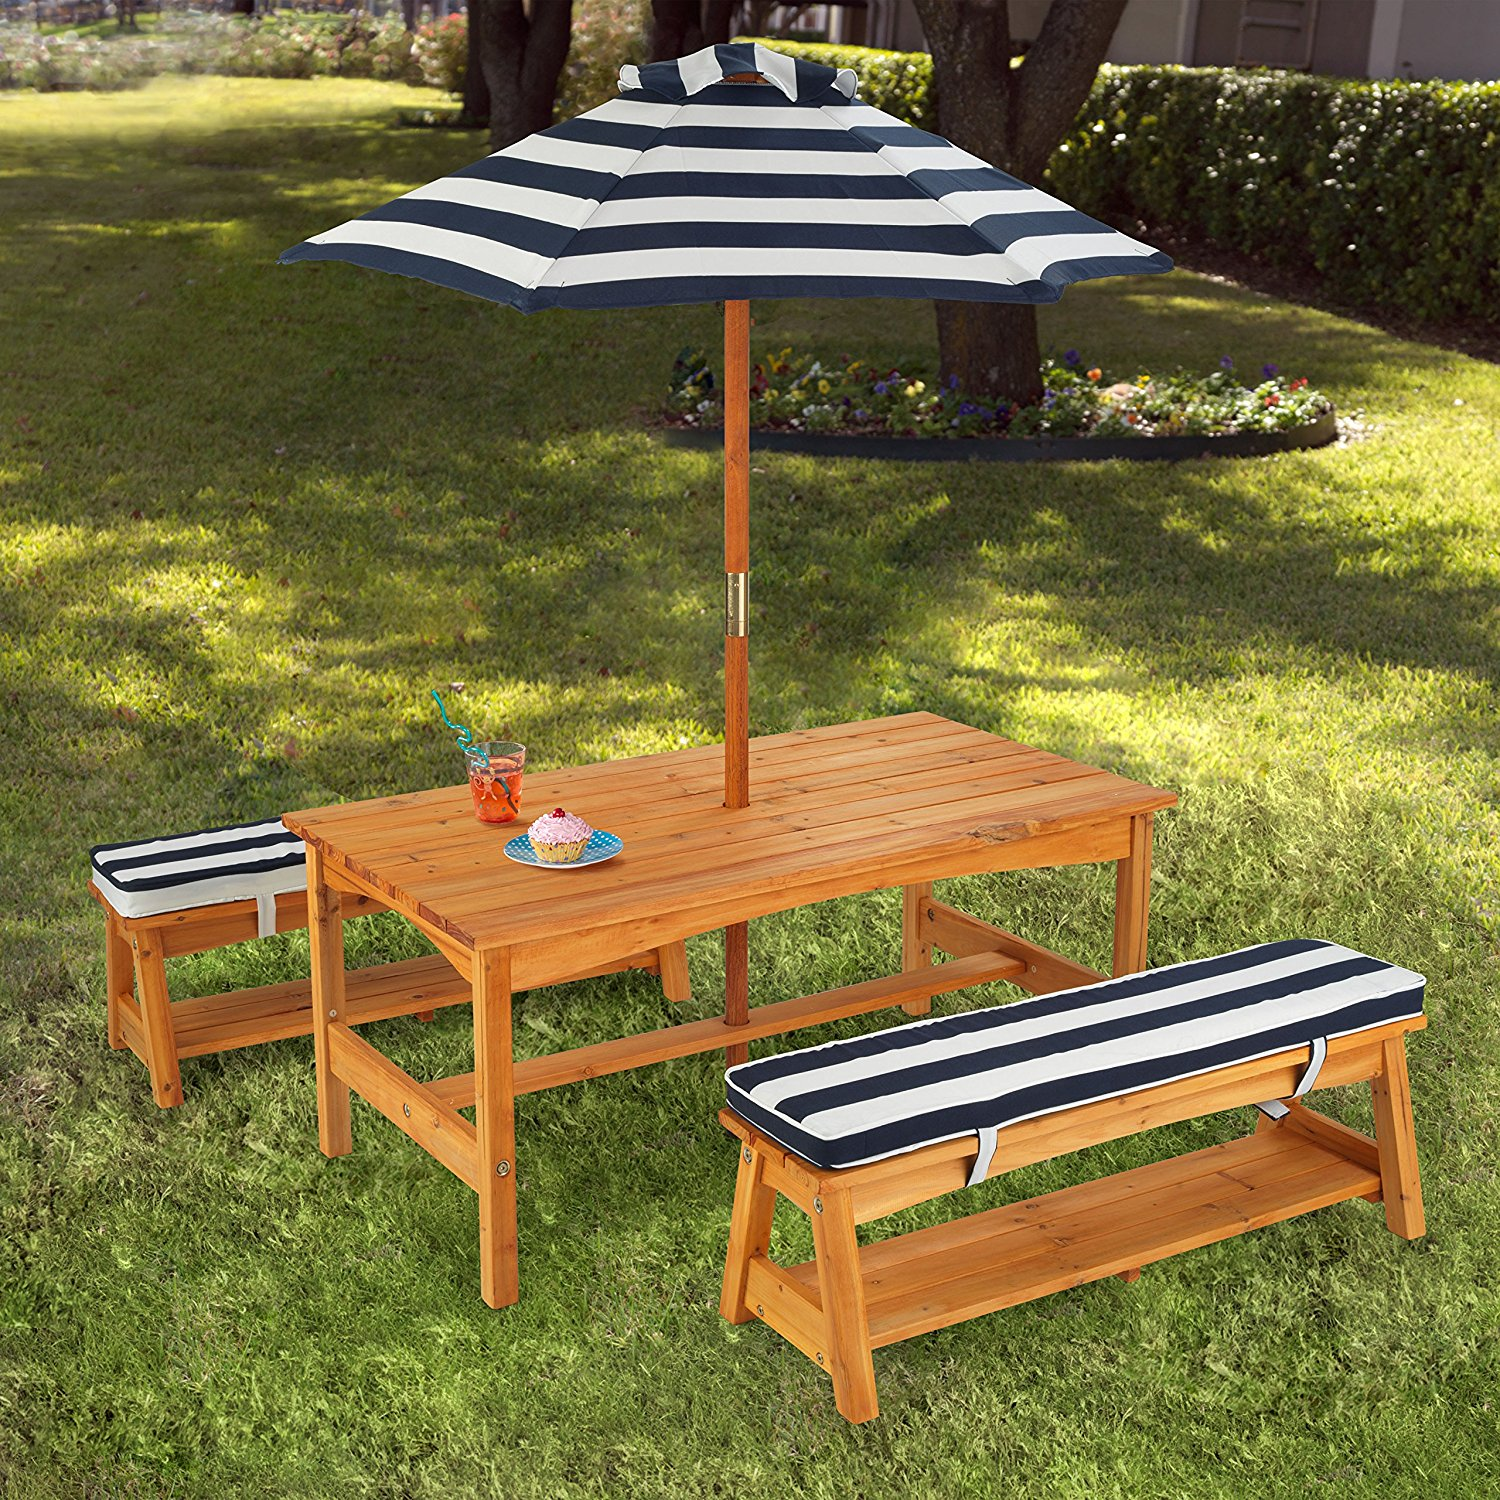 Compact kids outdoor furniture amazon.com: kidkraft outdoor table and chair set with cushions and navy  stripes: rxejegl